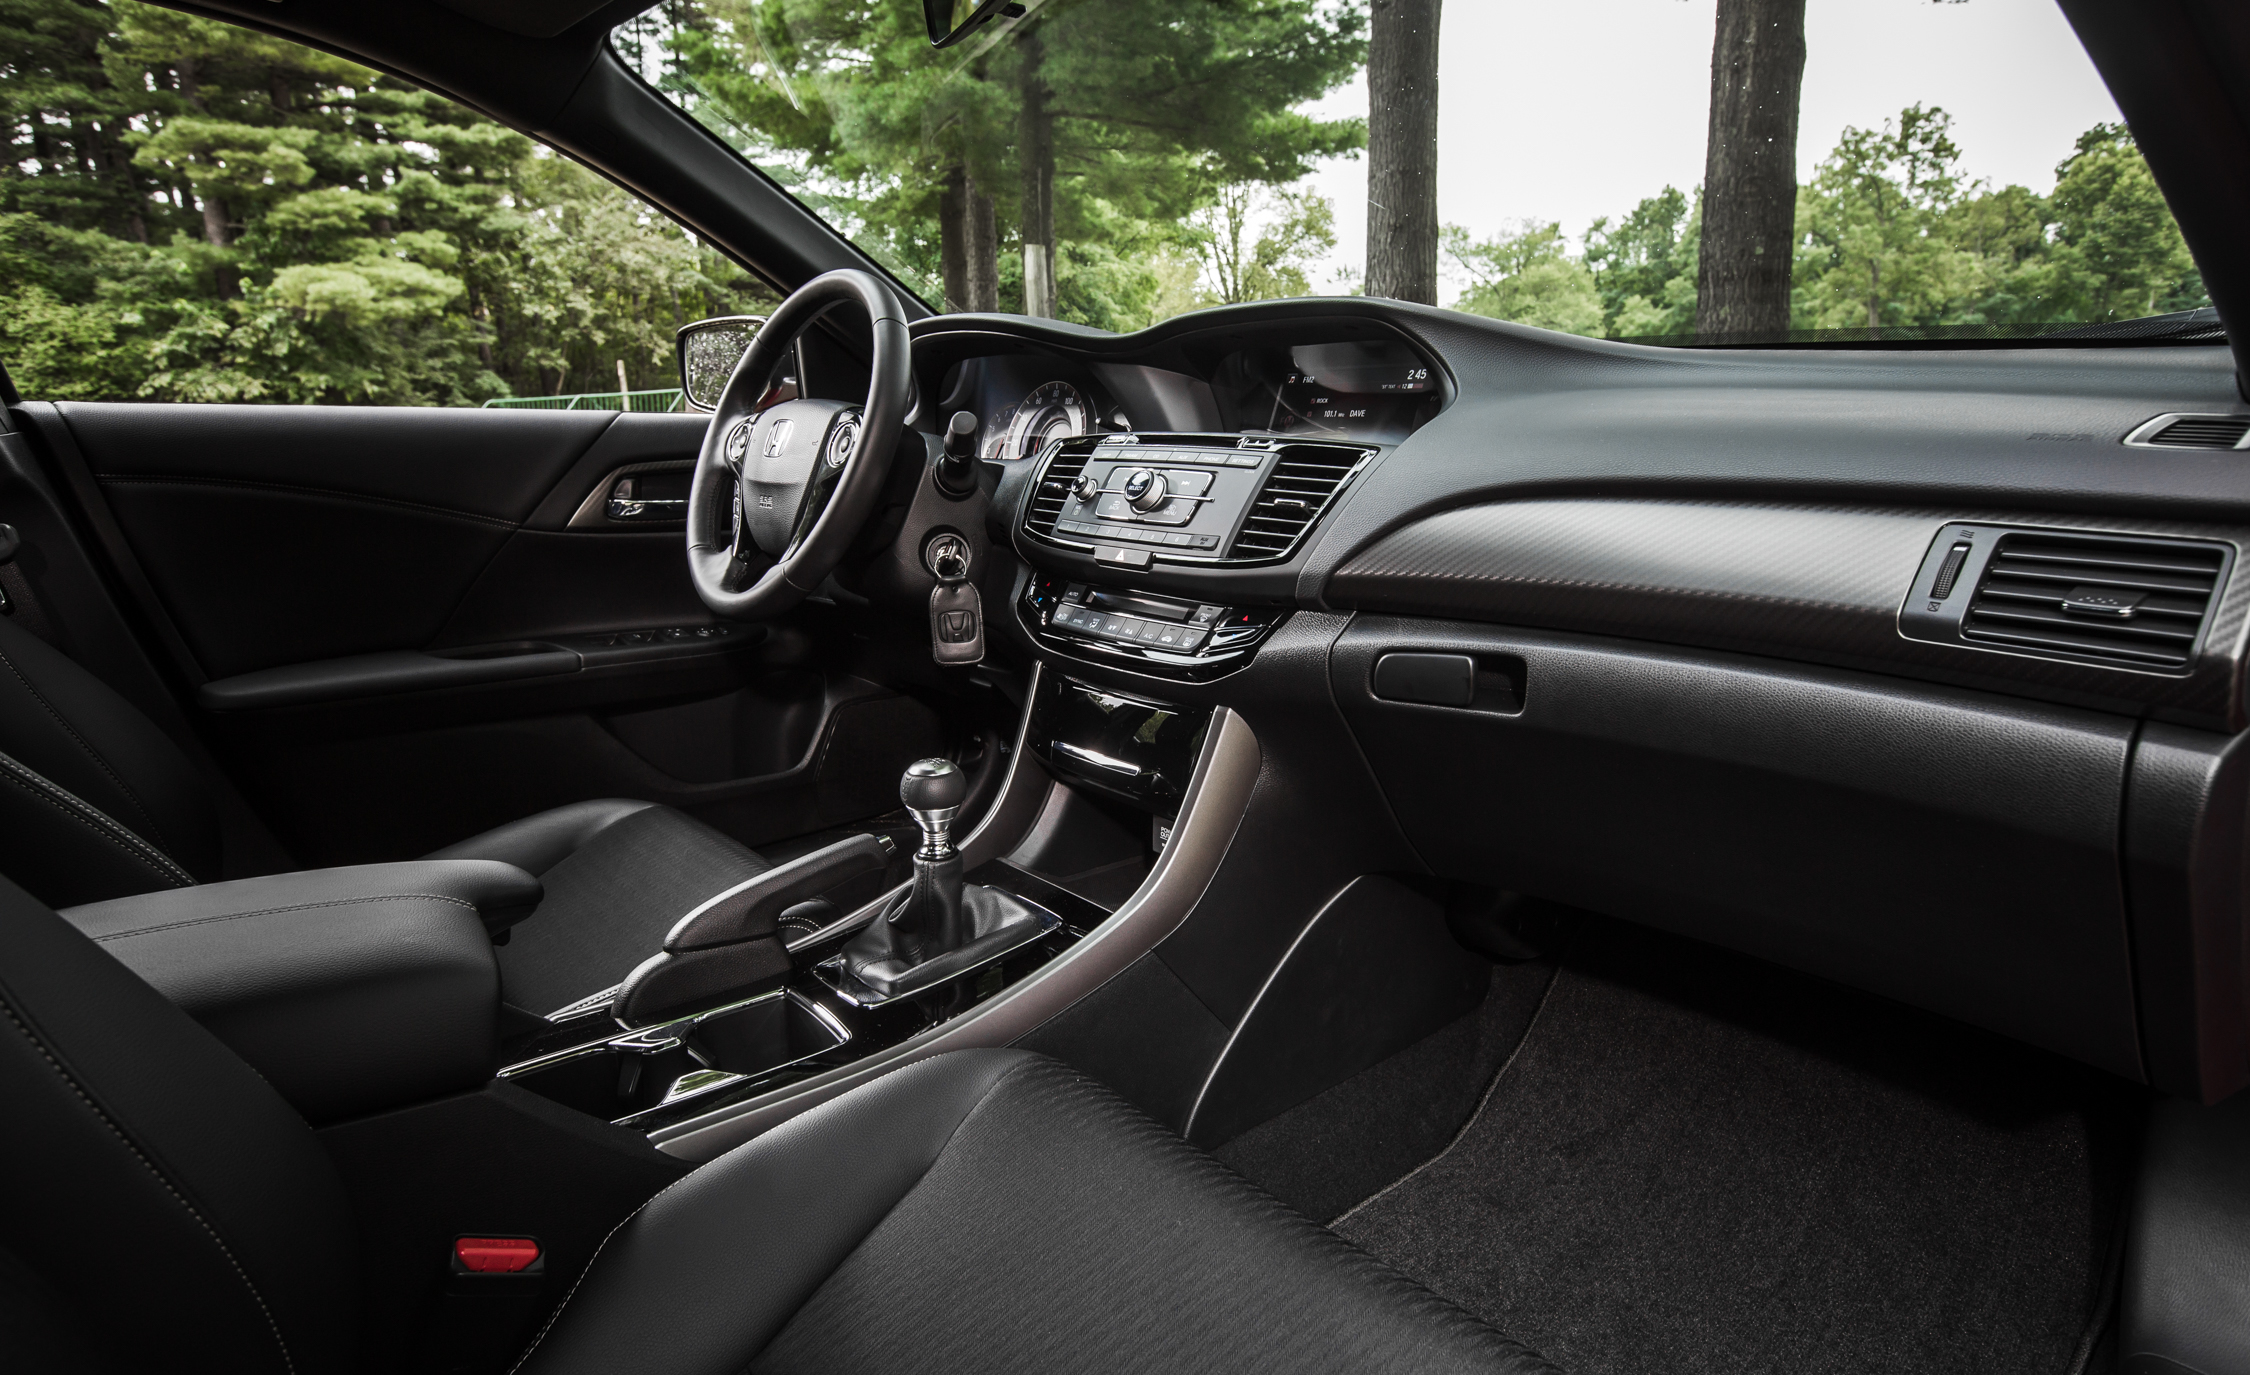 2016 honda accord sport reviews and specs 9432 cars performance reviews and test drive. Black Bedroom Furniture Sets. Home Design Ideas